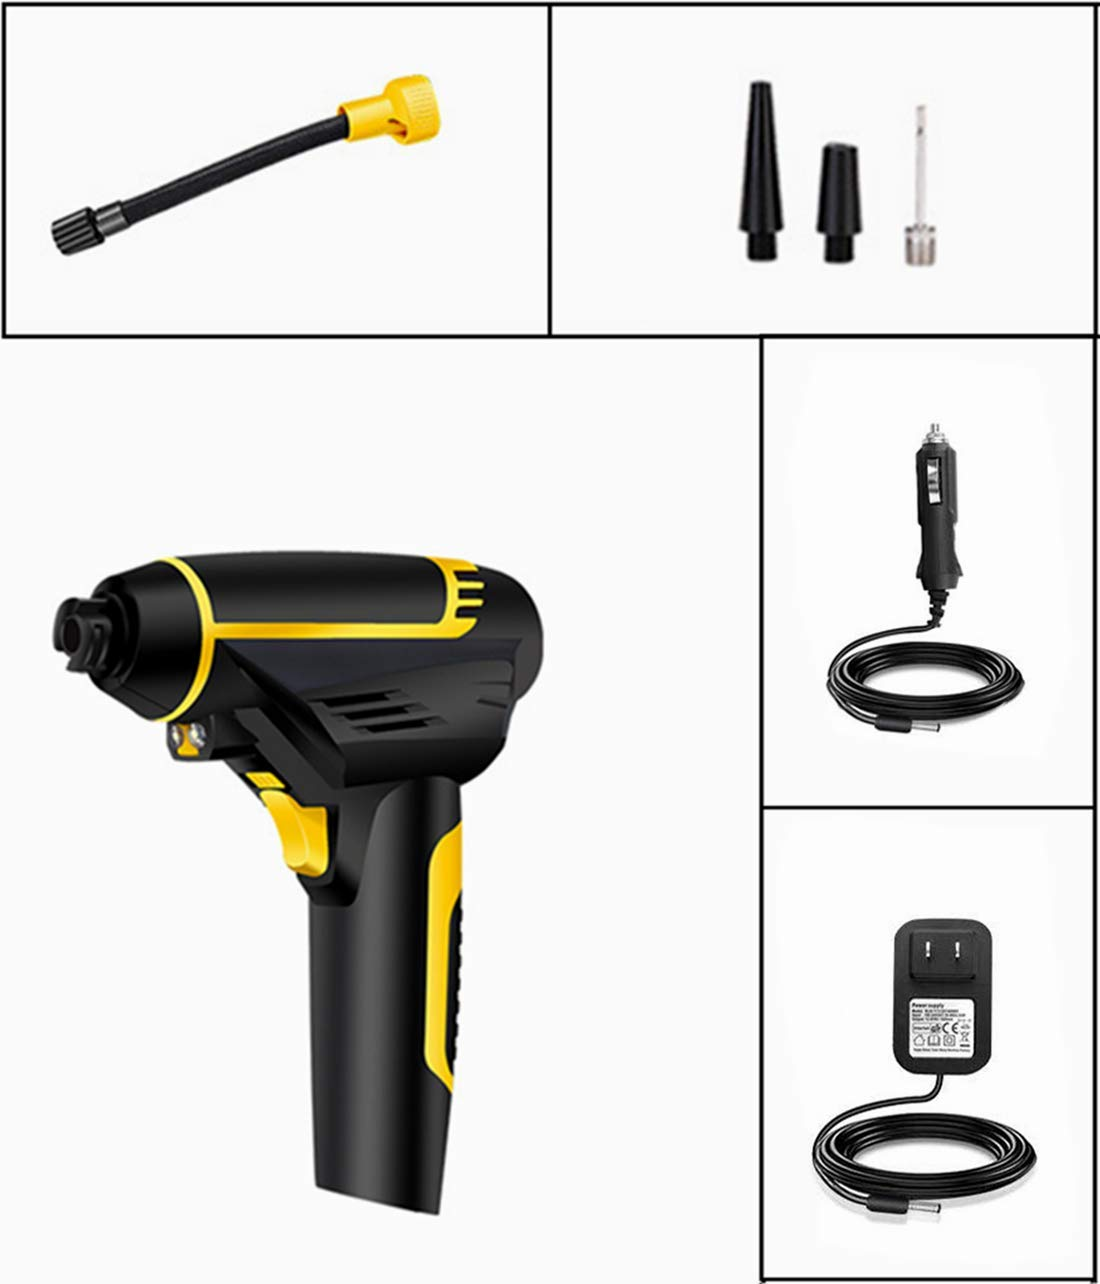 Portable Cordless Air Compressor Pump - Aifulo Automatic Hand Held Tire Inflator with Tire Pressure Gauge 150PSI Digital LCD LED Rechargeable Handy Air Pump